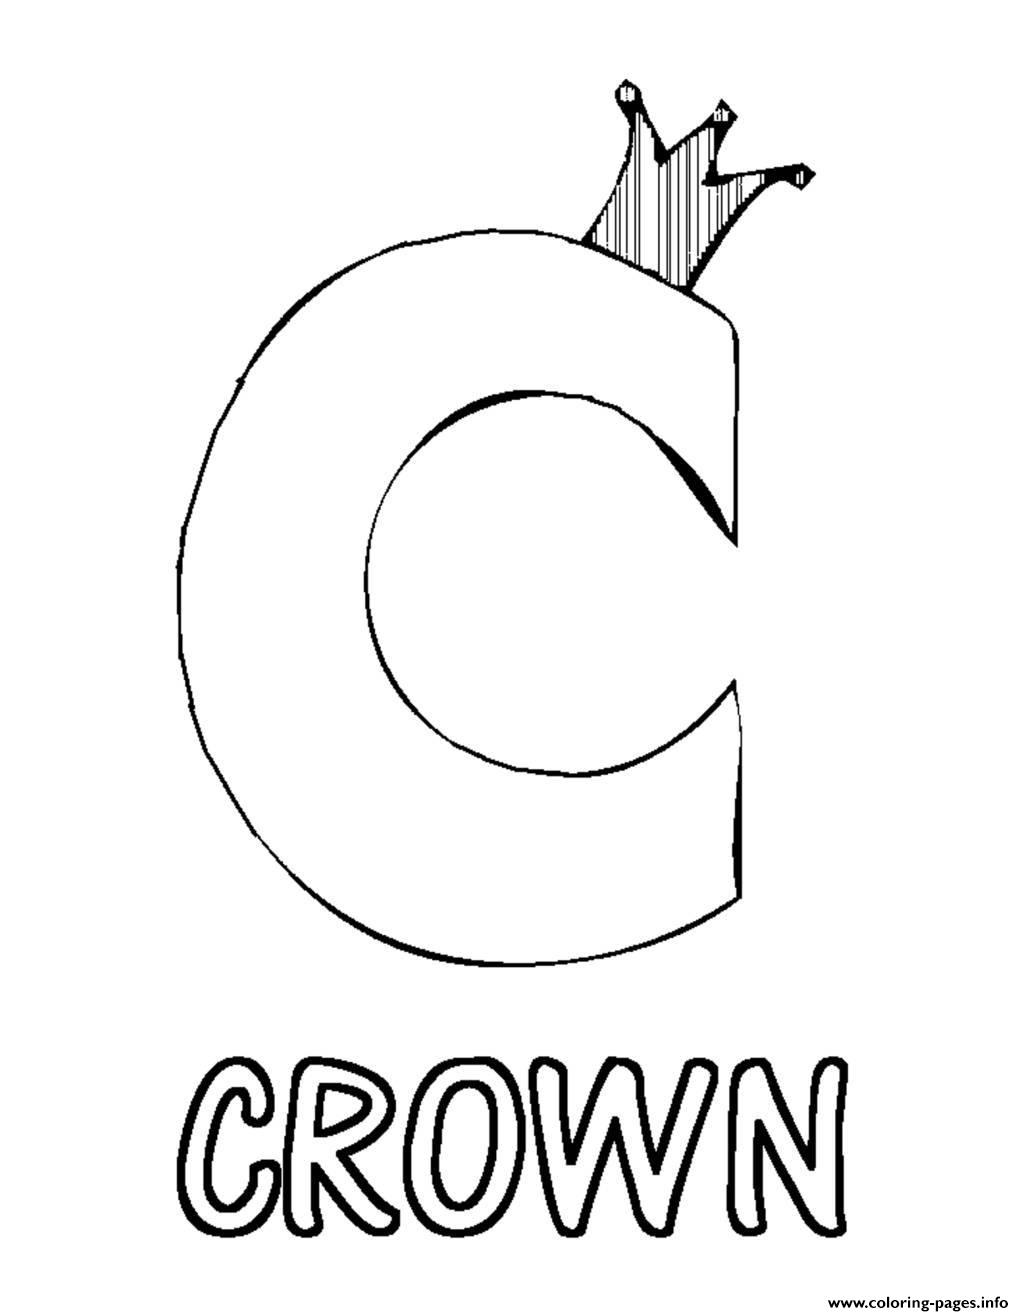 crown c s alphabet7351 Coloring pages Printable